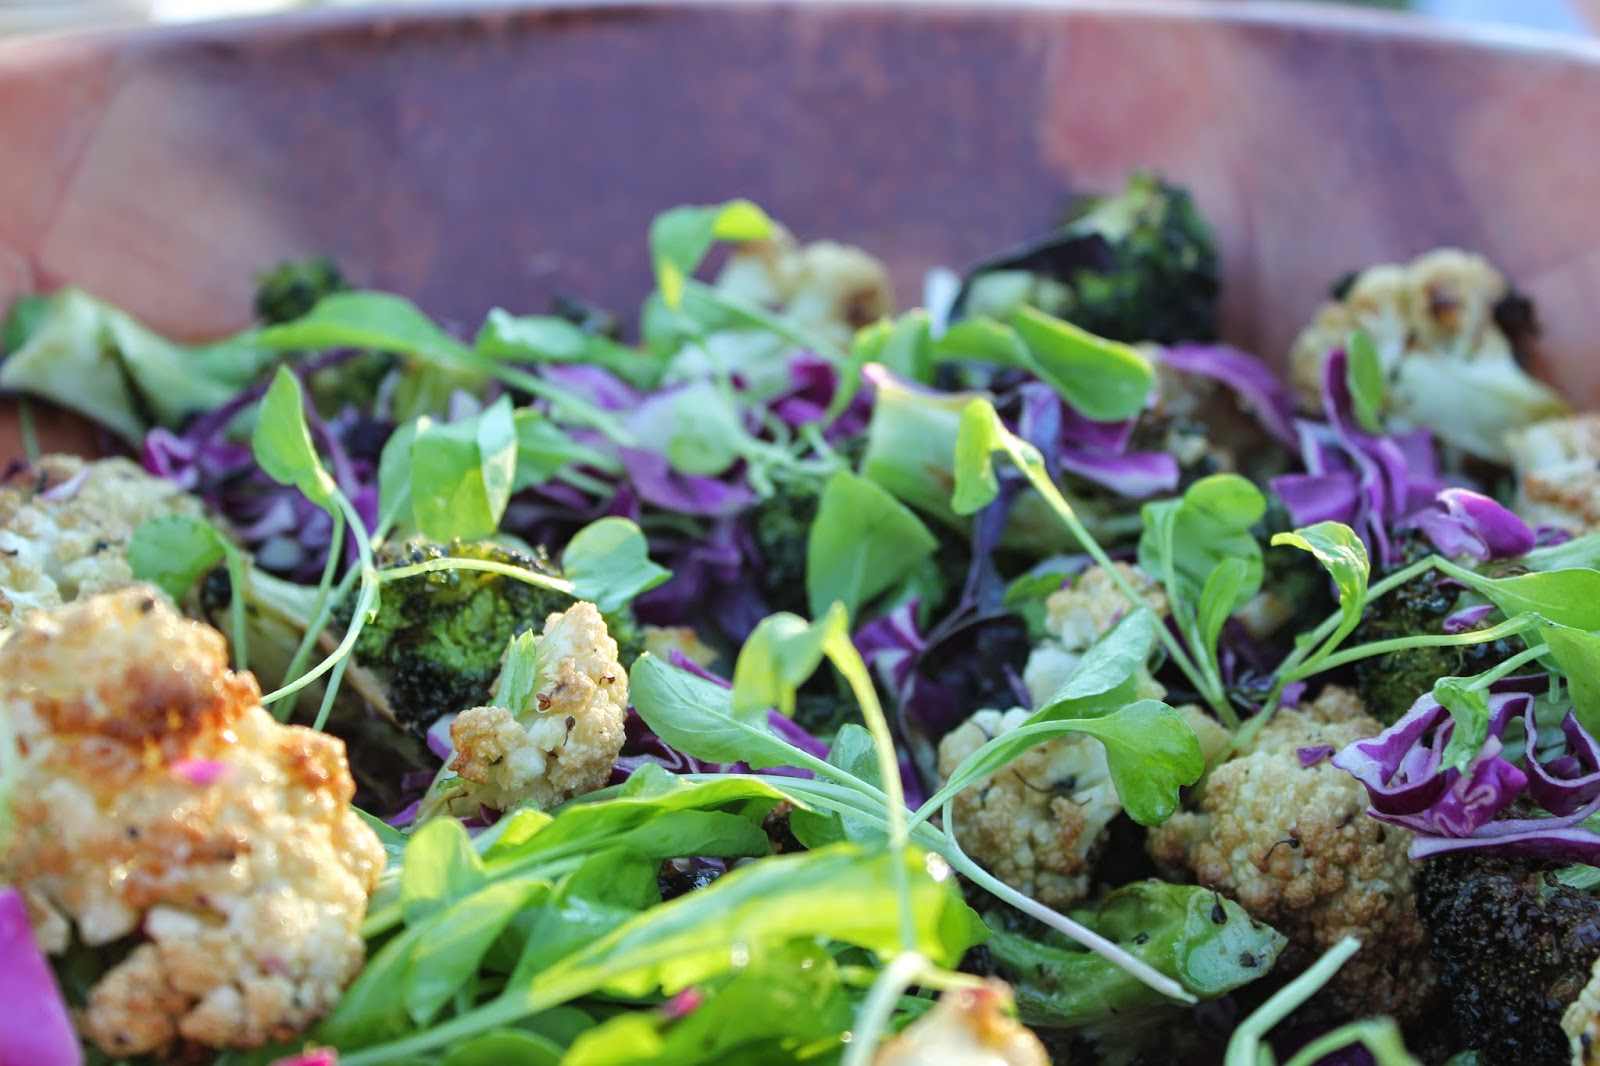 Roasted broccoli and cauliflower salad at Dinner in the Field at Volante Farms, Needham, Mass.